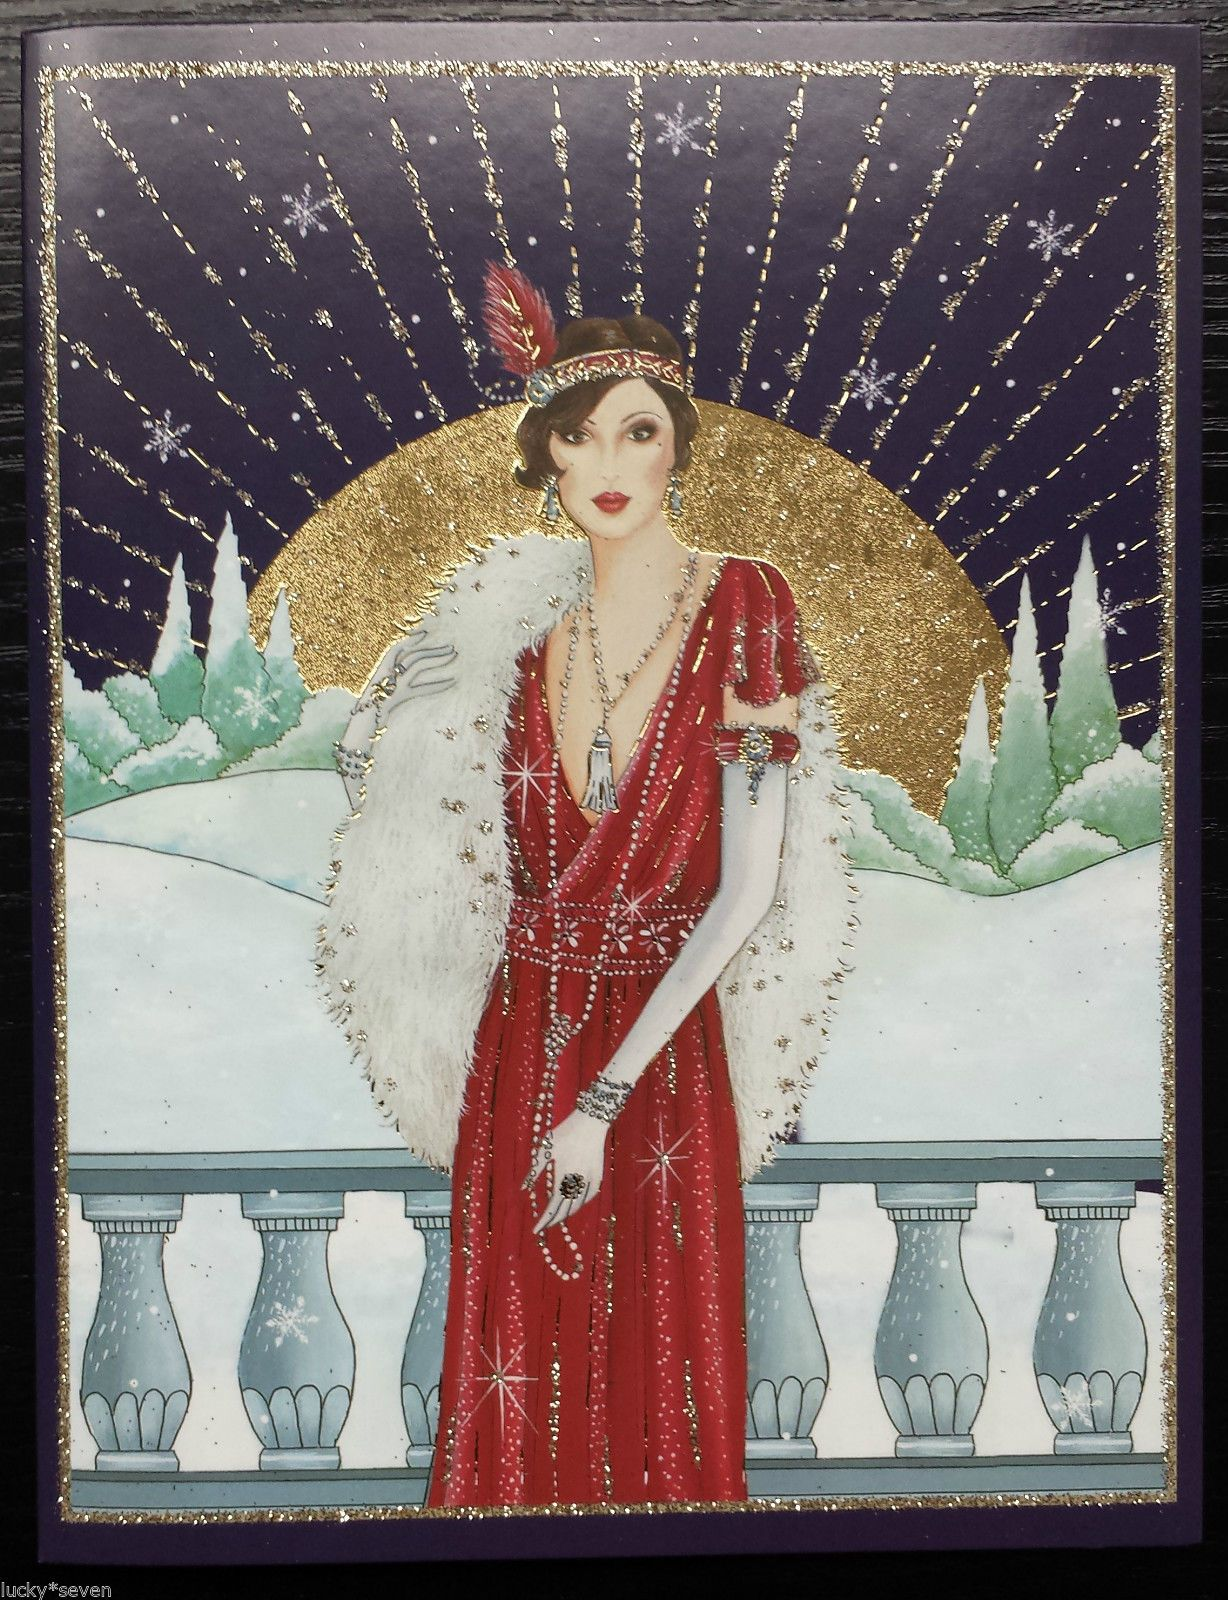 11 Clintons Art Deco Lady Embellished Christmas Cards • £16.00 ...